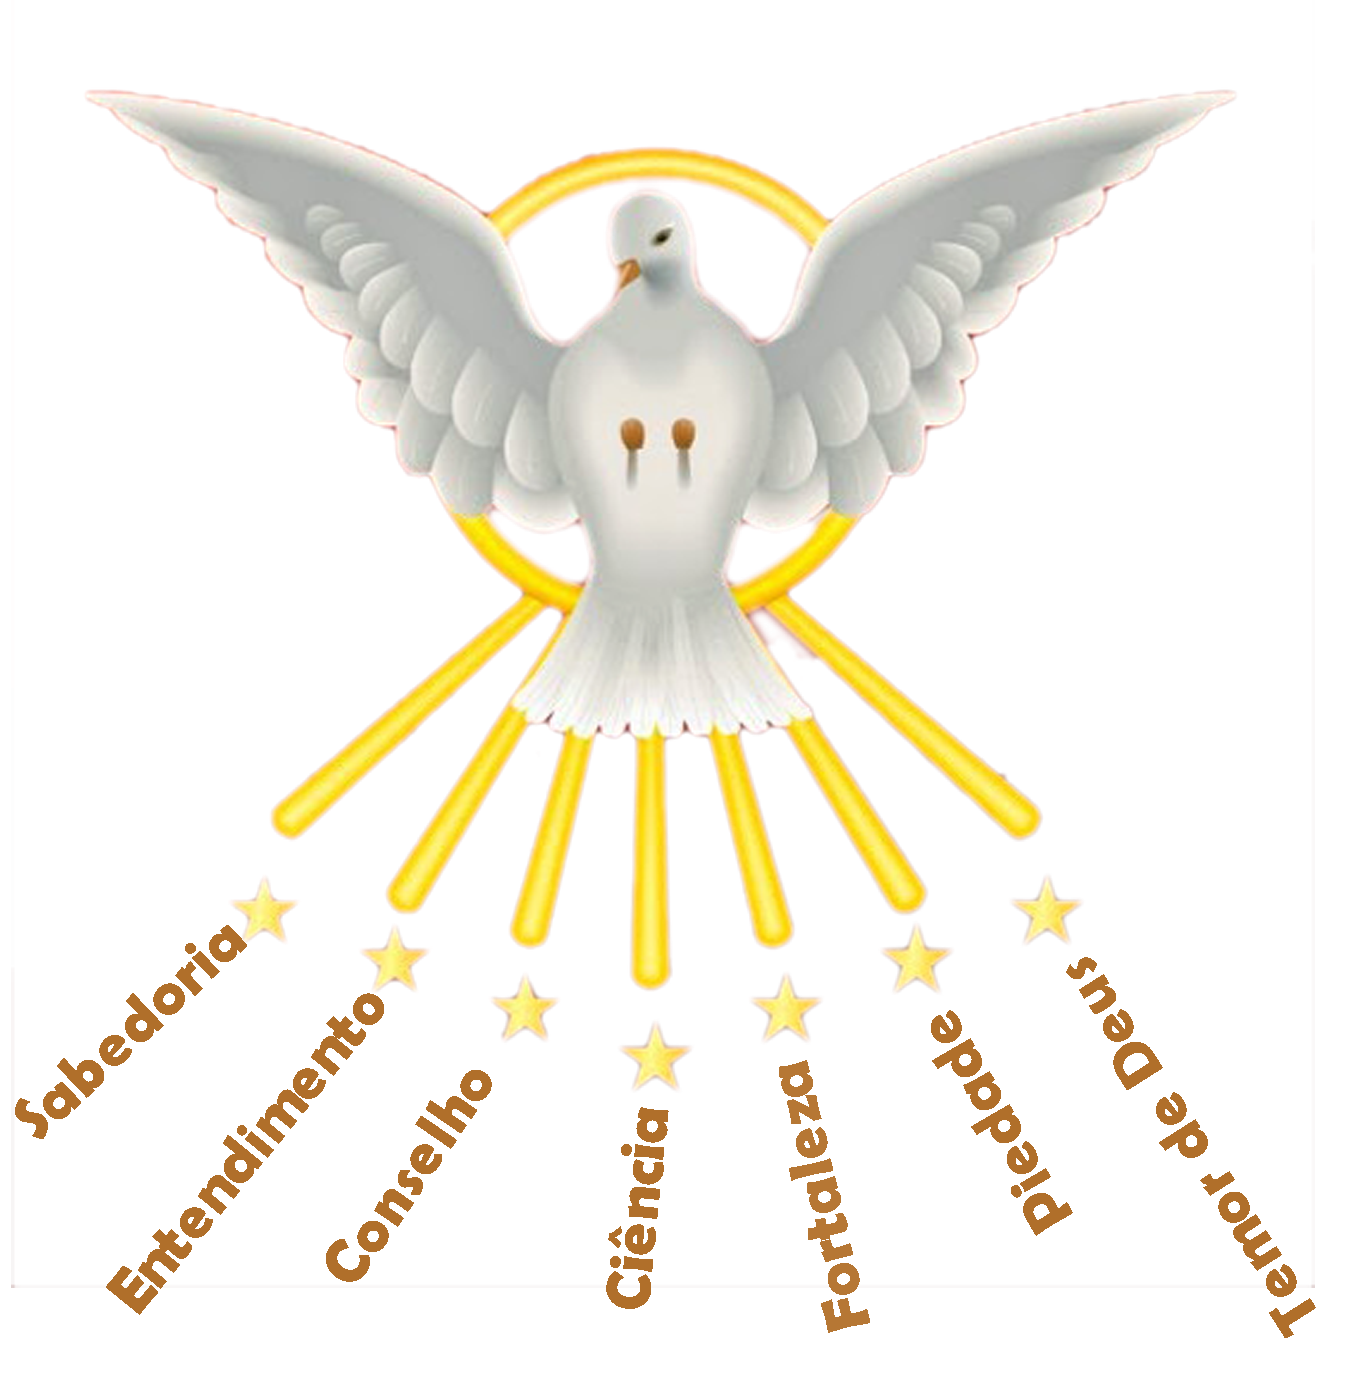 Pomba espirito santo png clipart images gallery for free.